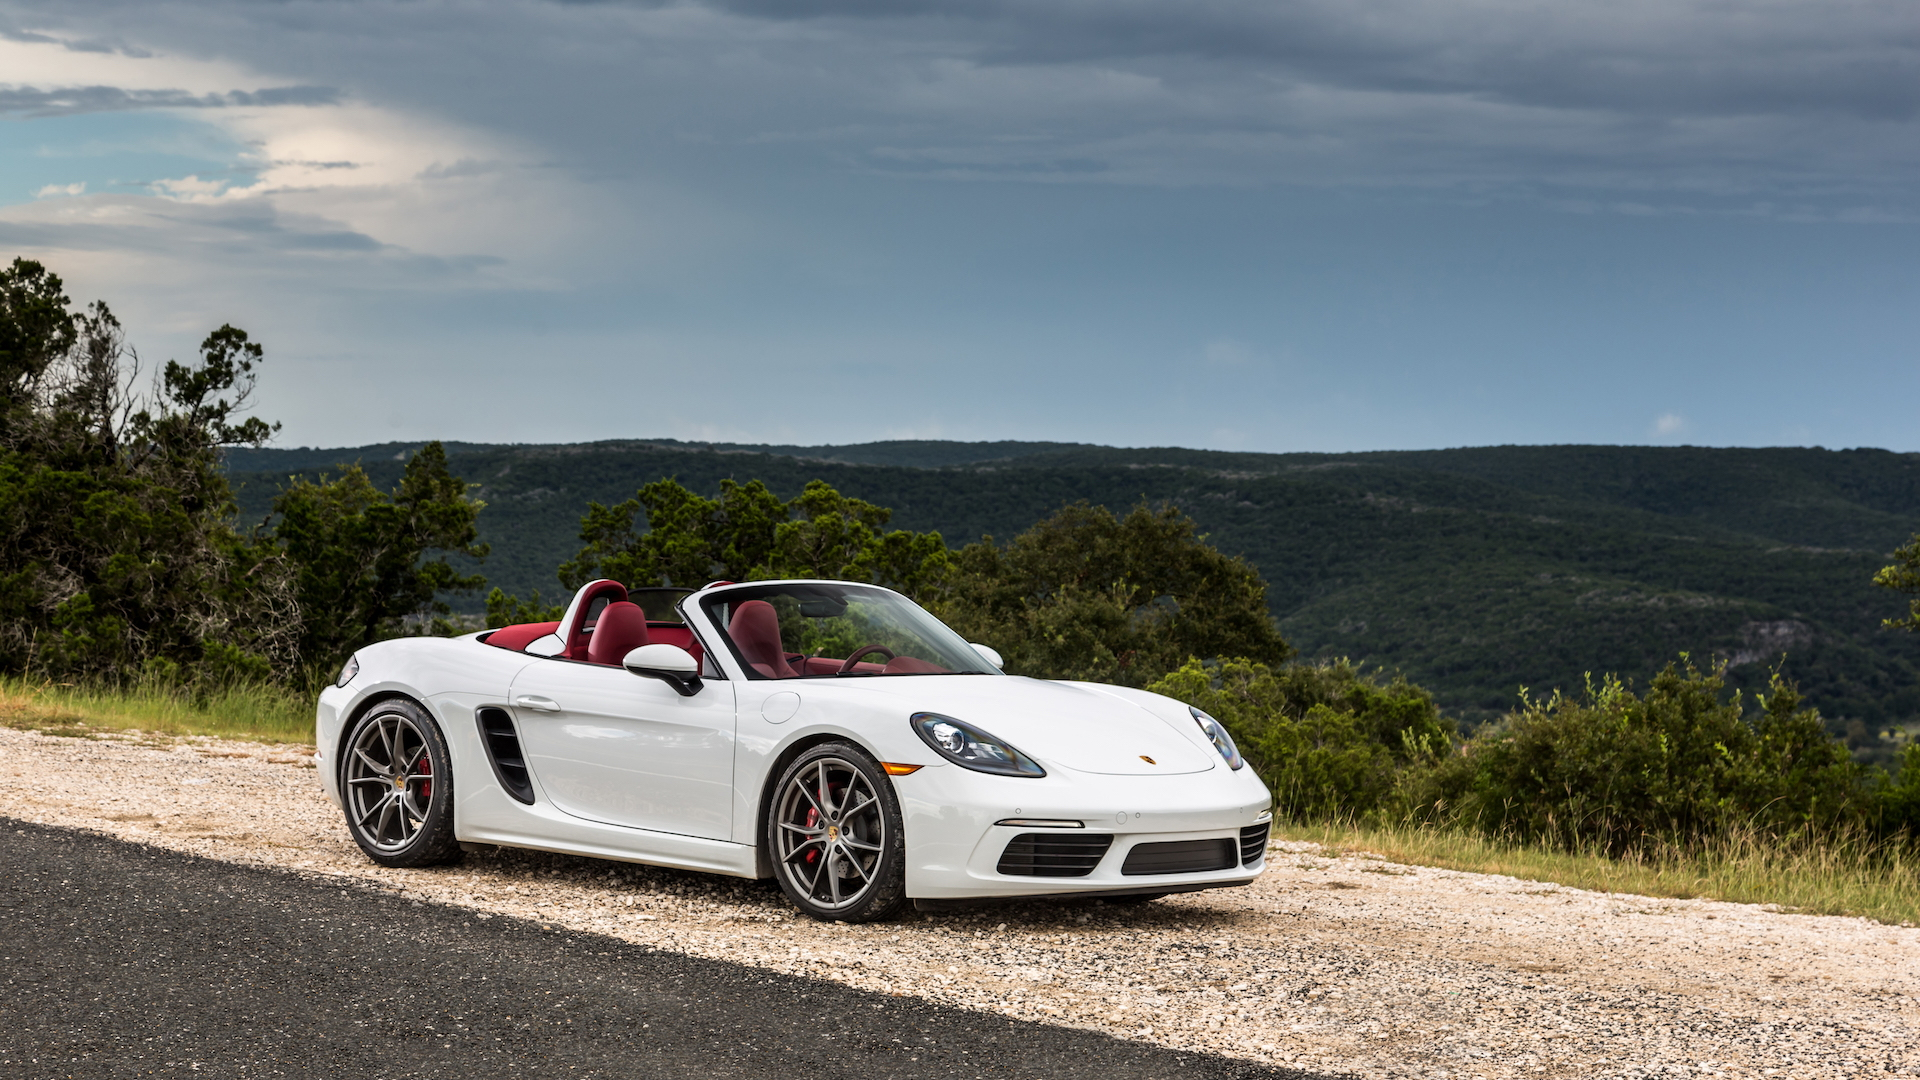 2017 porsche 718 boxster and cayman first drive review: don't play